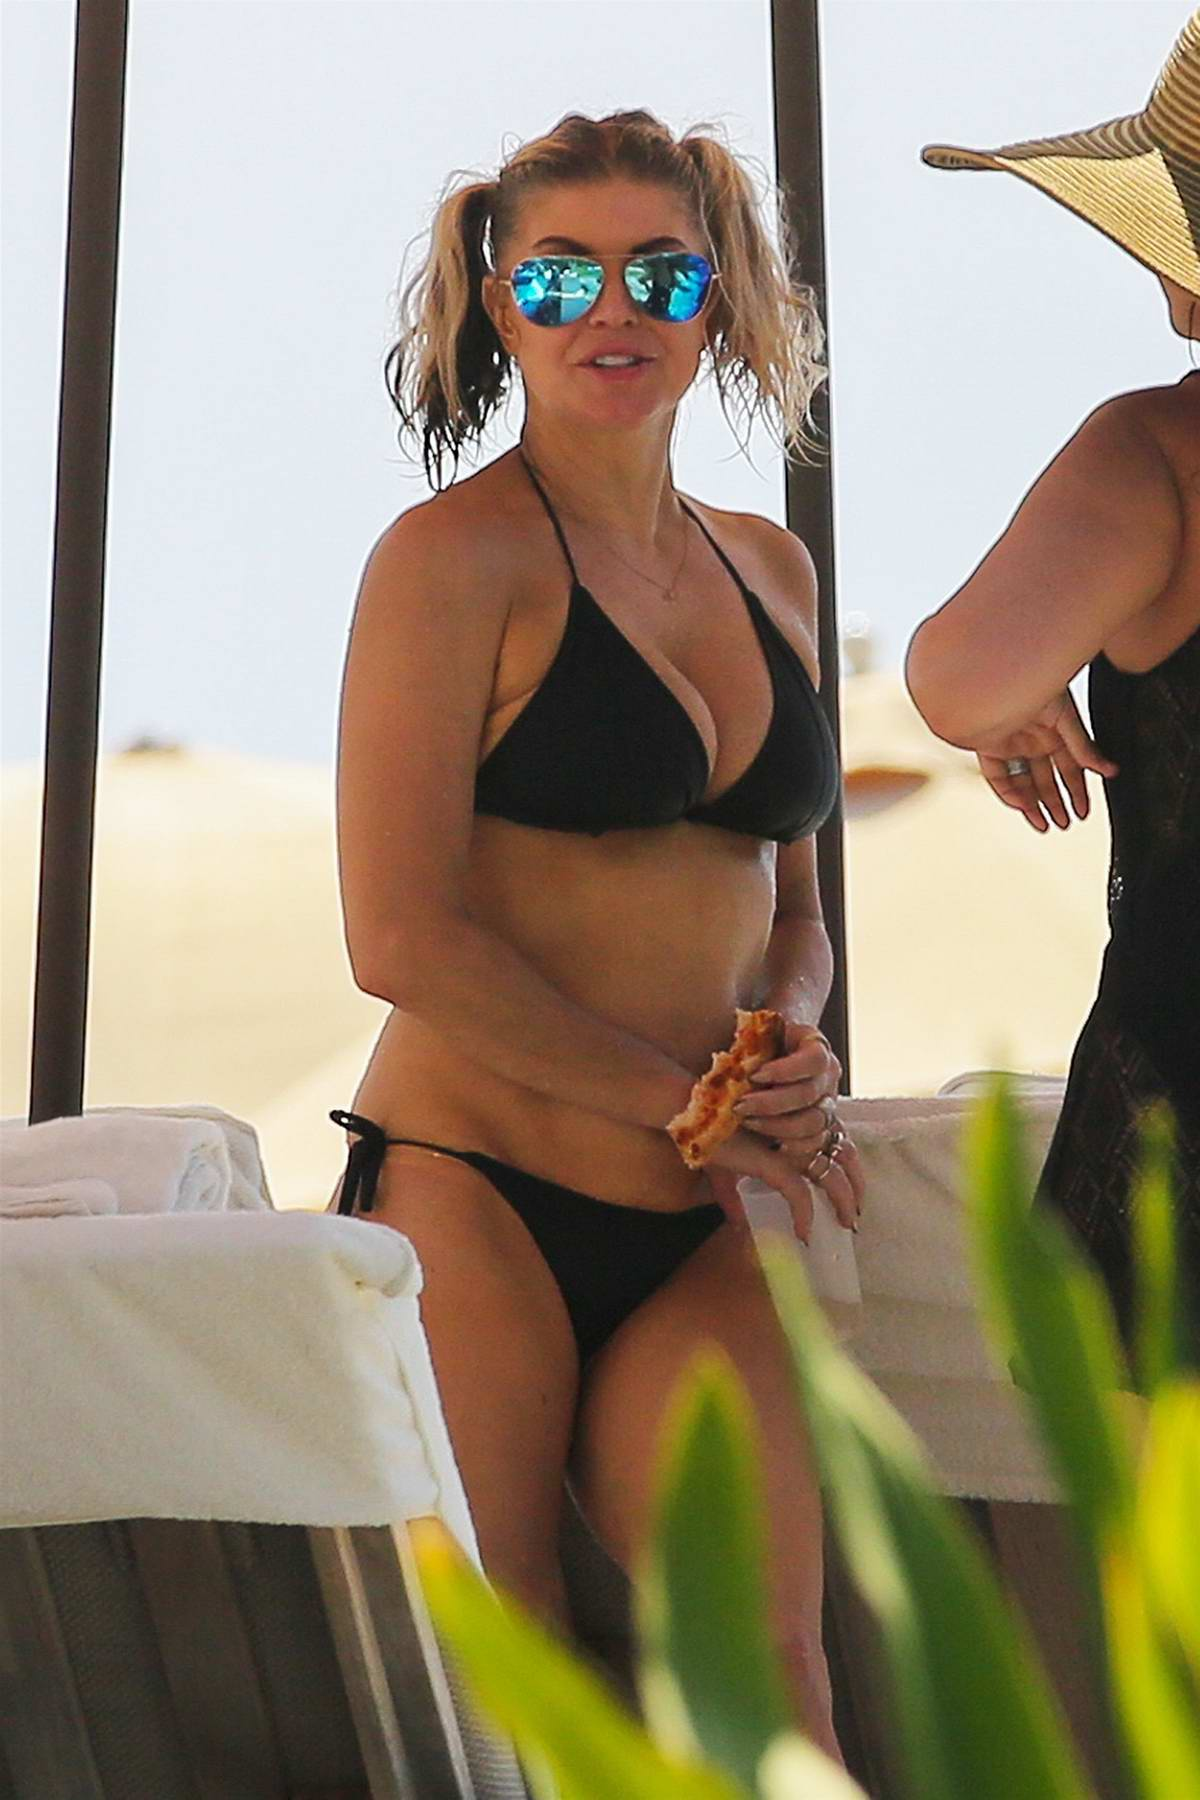 Fergie Duhamel in a Black Bikini continuing her vacation in Hawaii